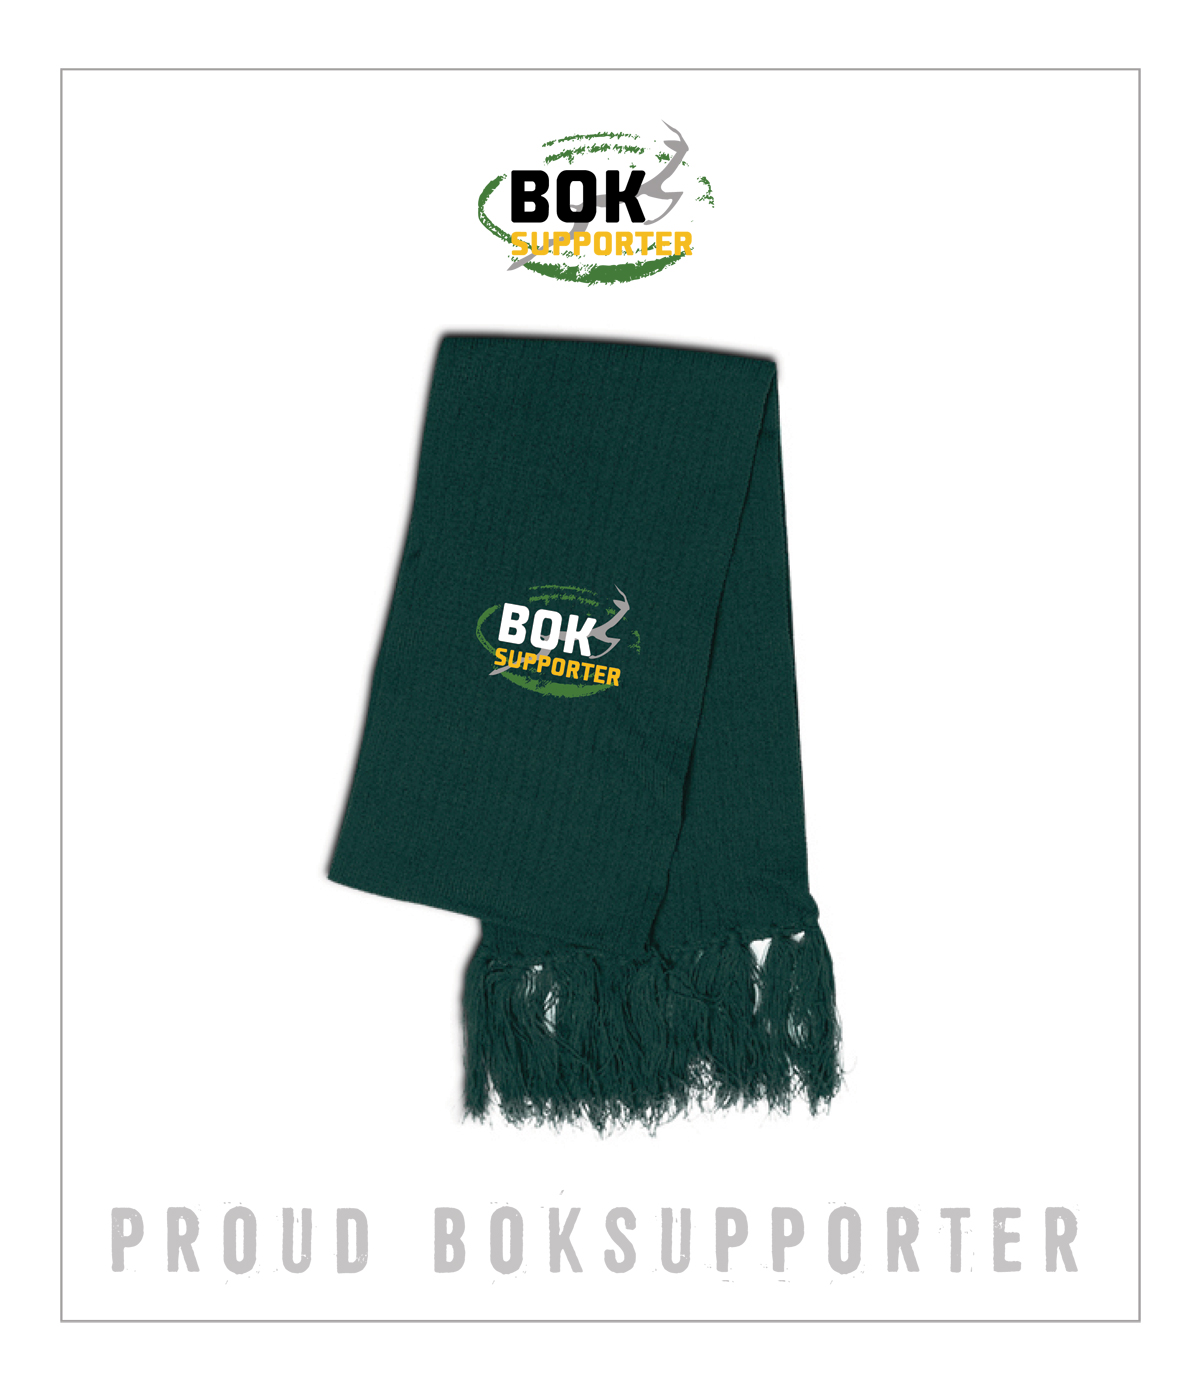 Bok Supporter Knitted Scarf